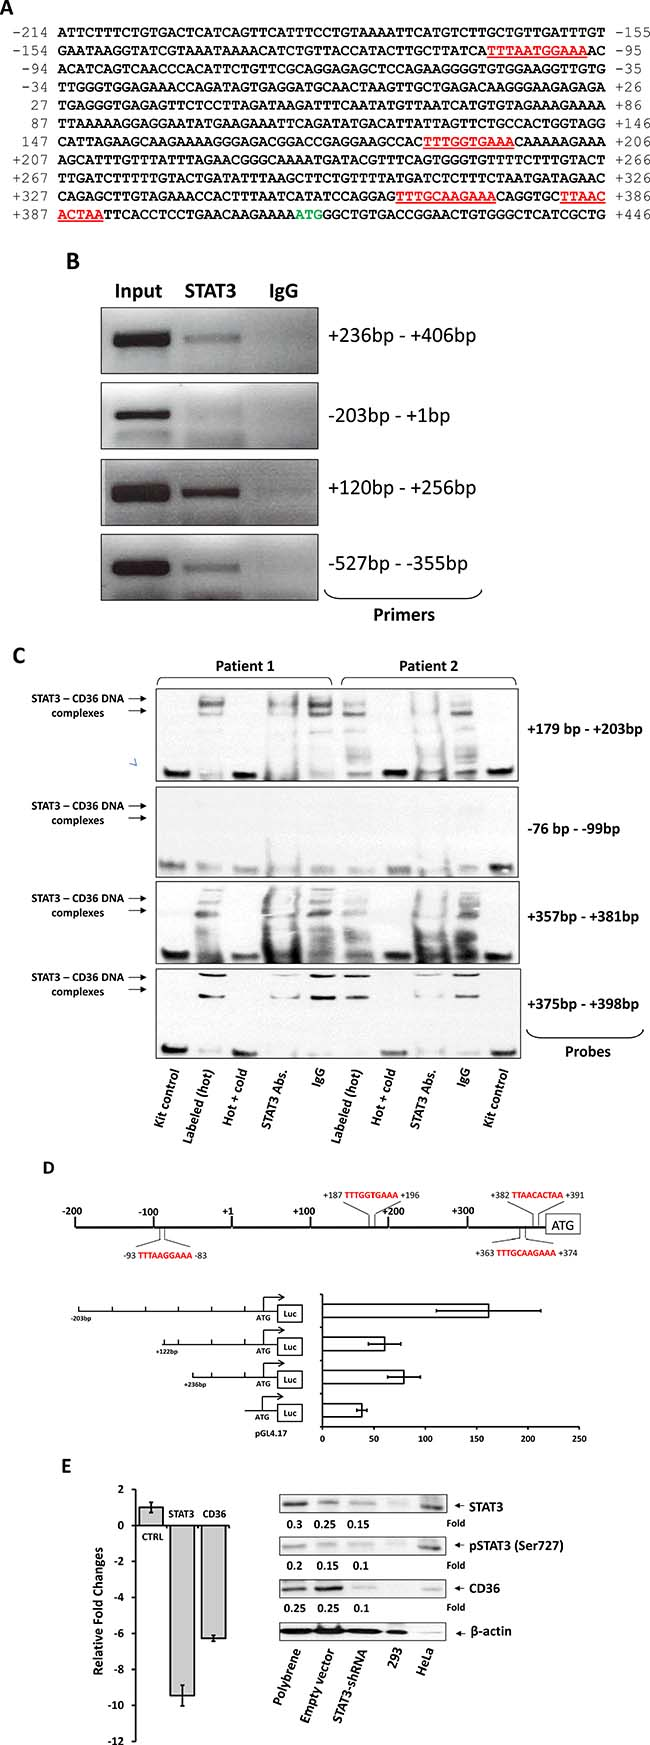 STAT3 binds to and activates the CD36 gene promoter.